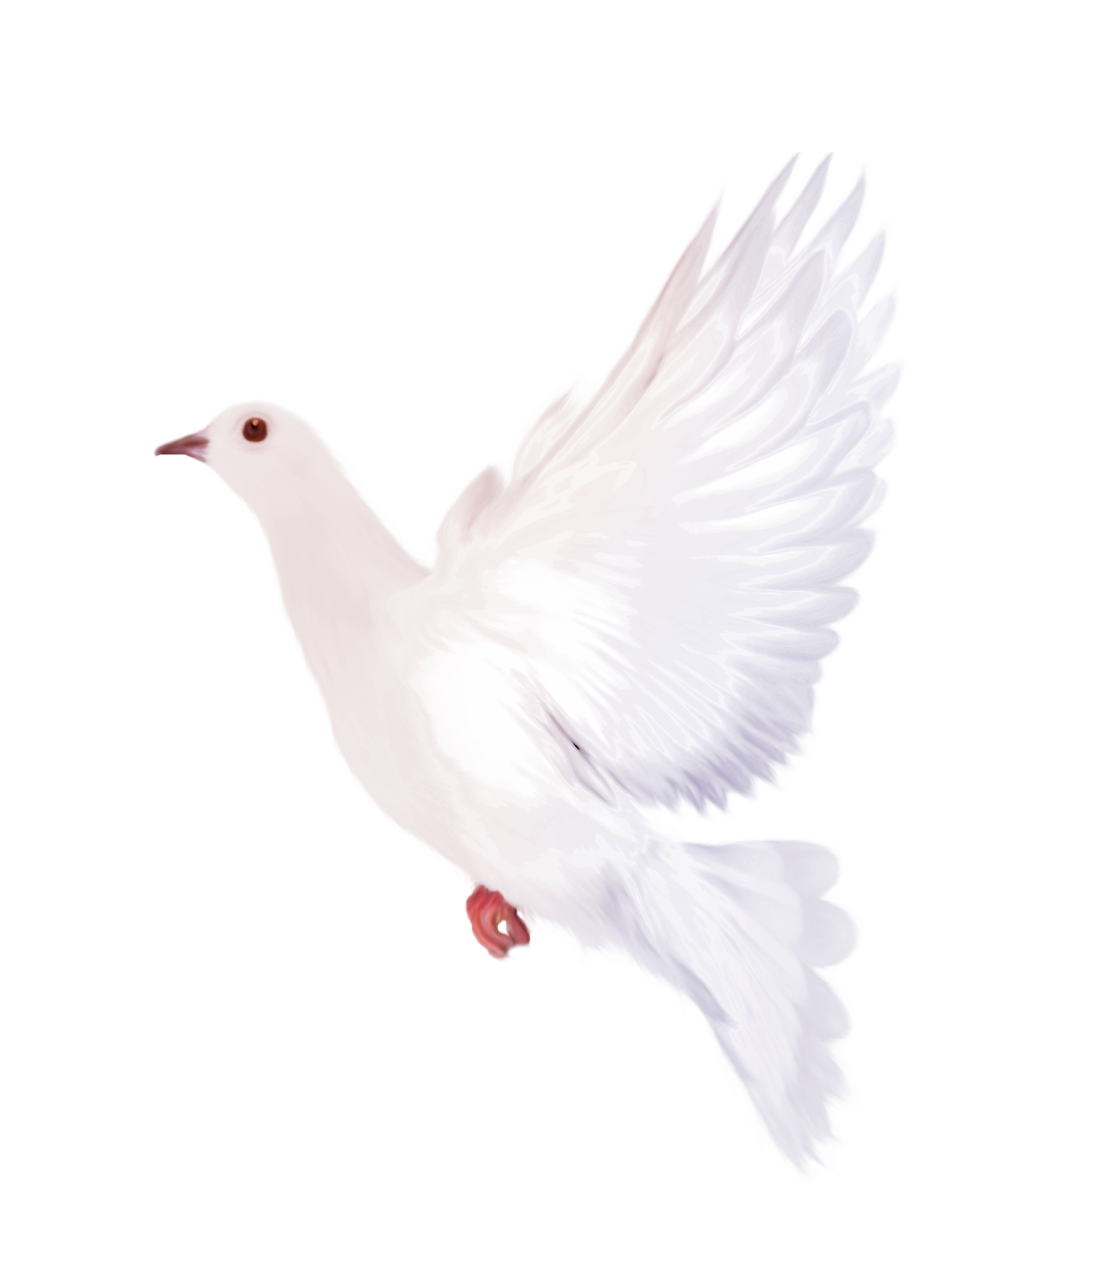 Peace clipart small dove. White gallery yopriceville high